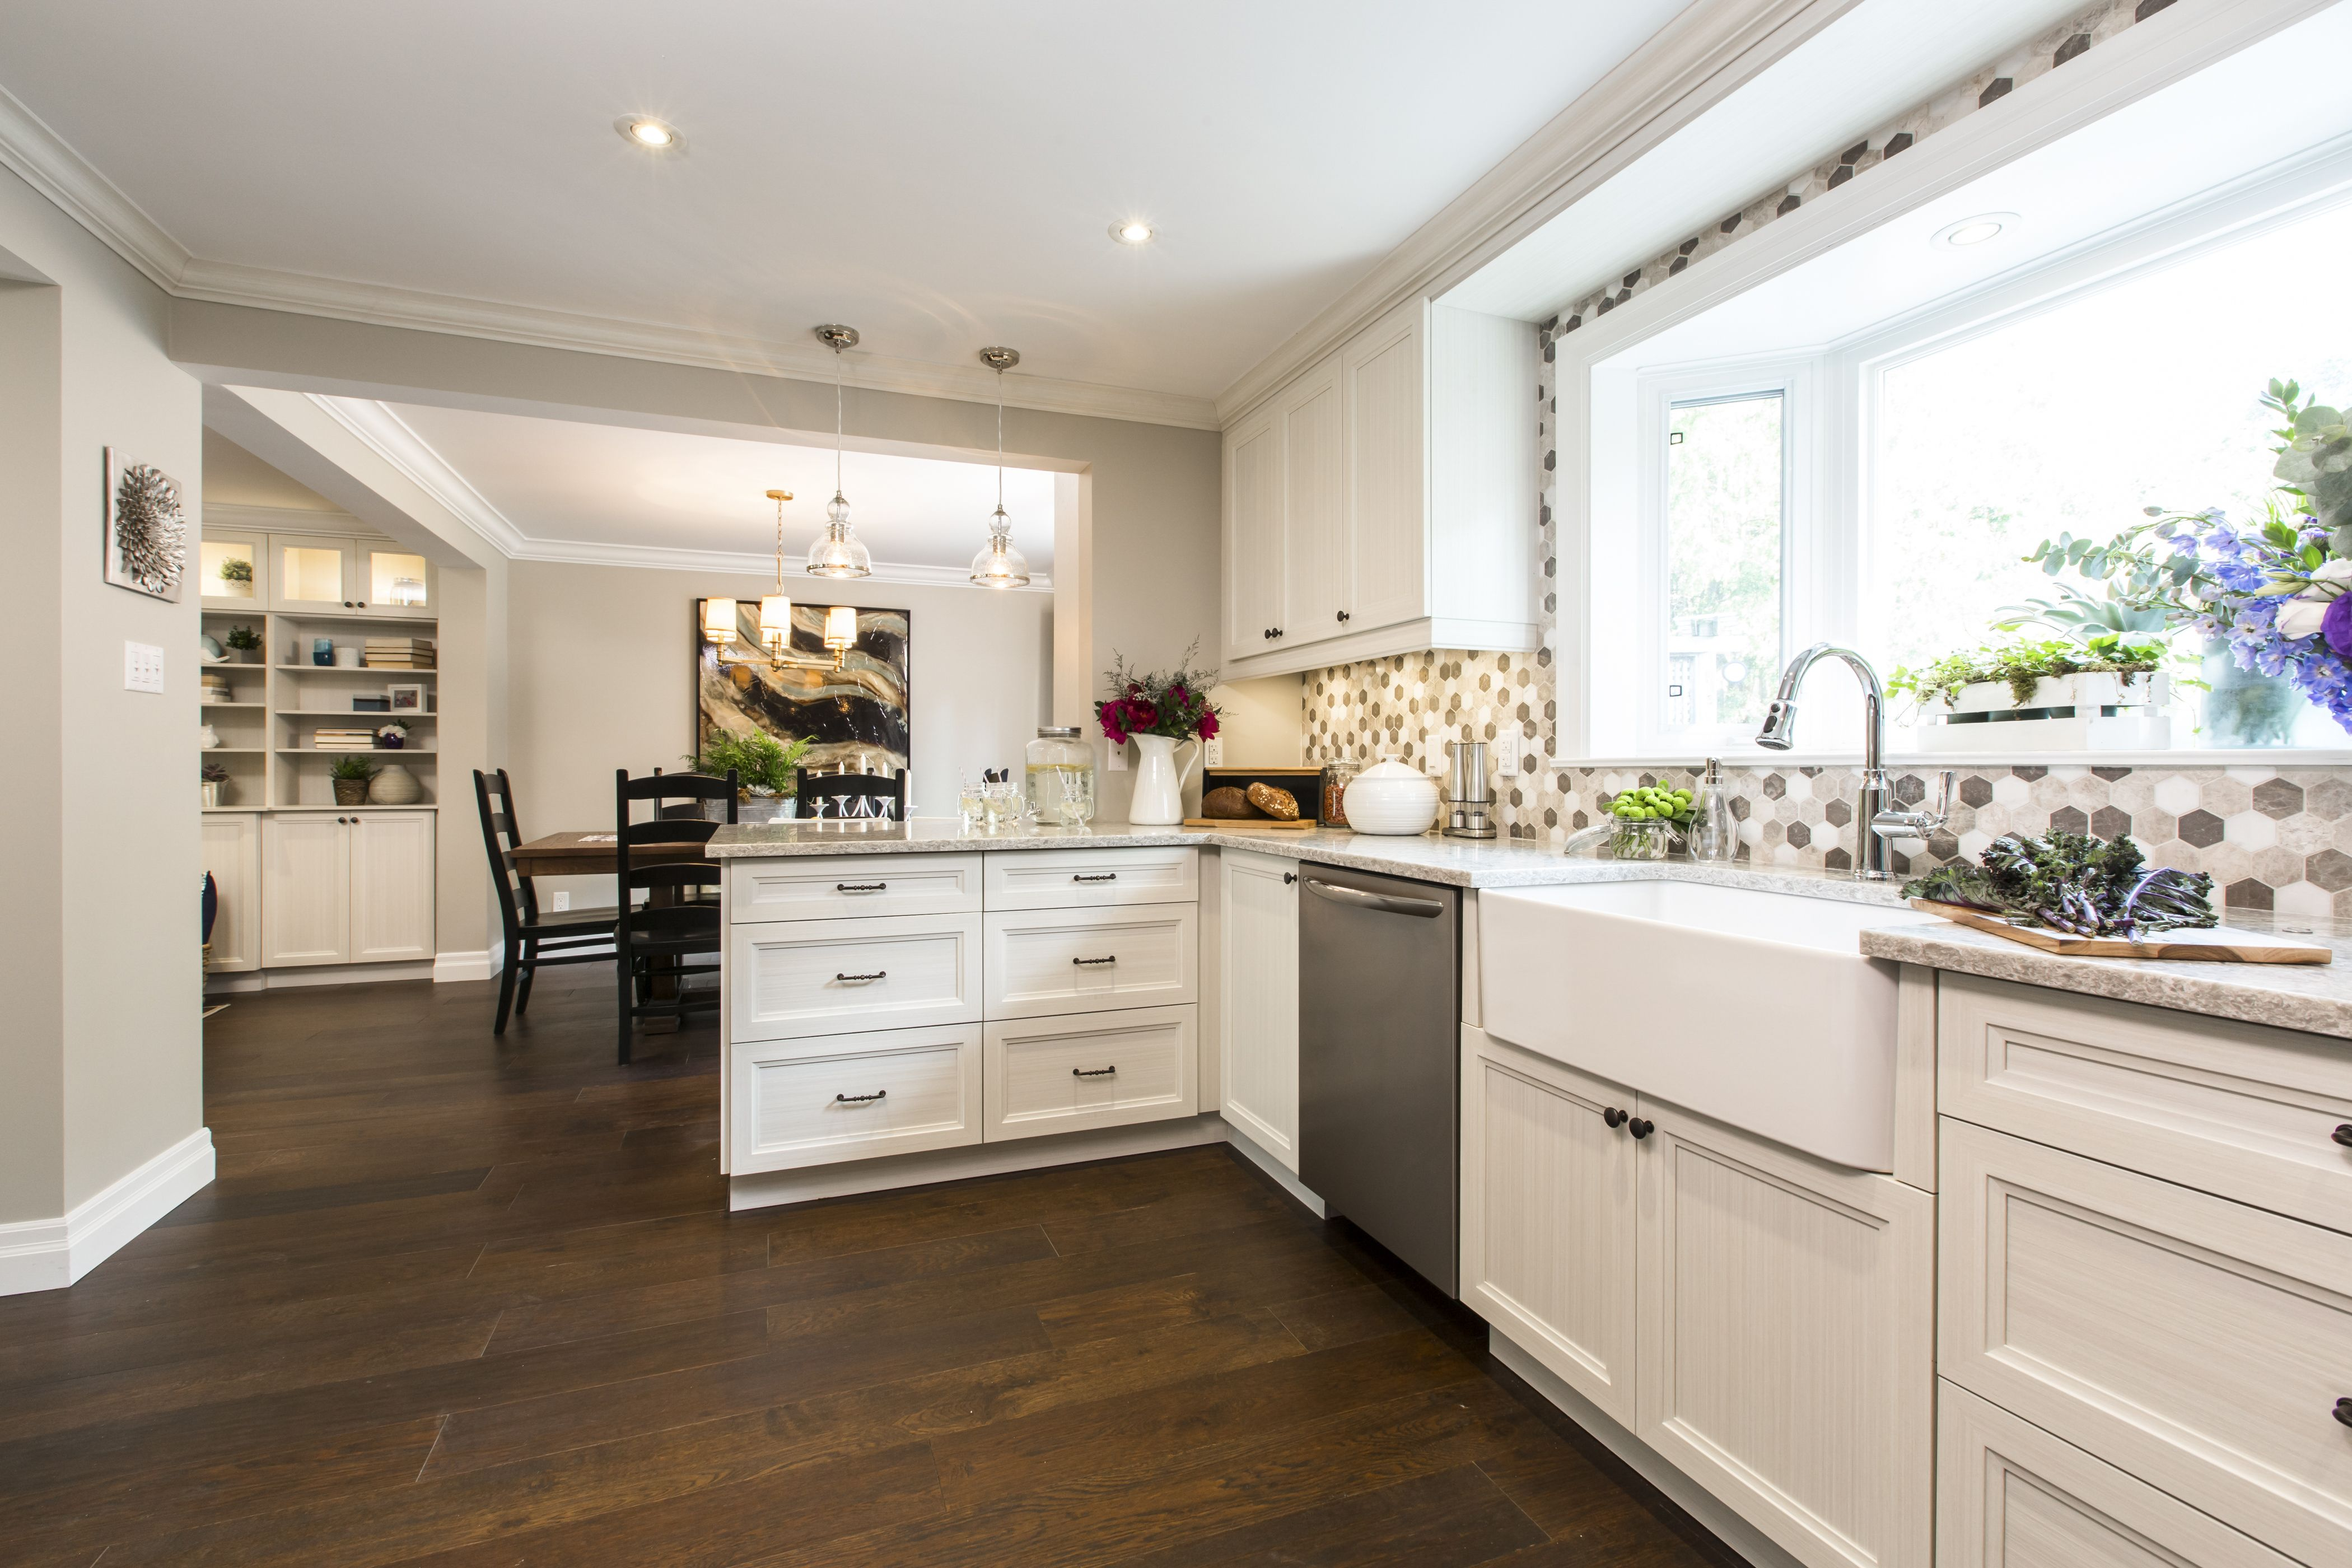 During This Weeku0027s Episode Of @W_Networku0027s @PropertyBrother, You Can Find  Our BLANCO CERANA · Property Brothers KitchenFireclay SinkKitchen ...